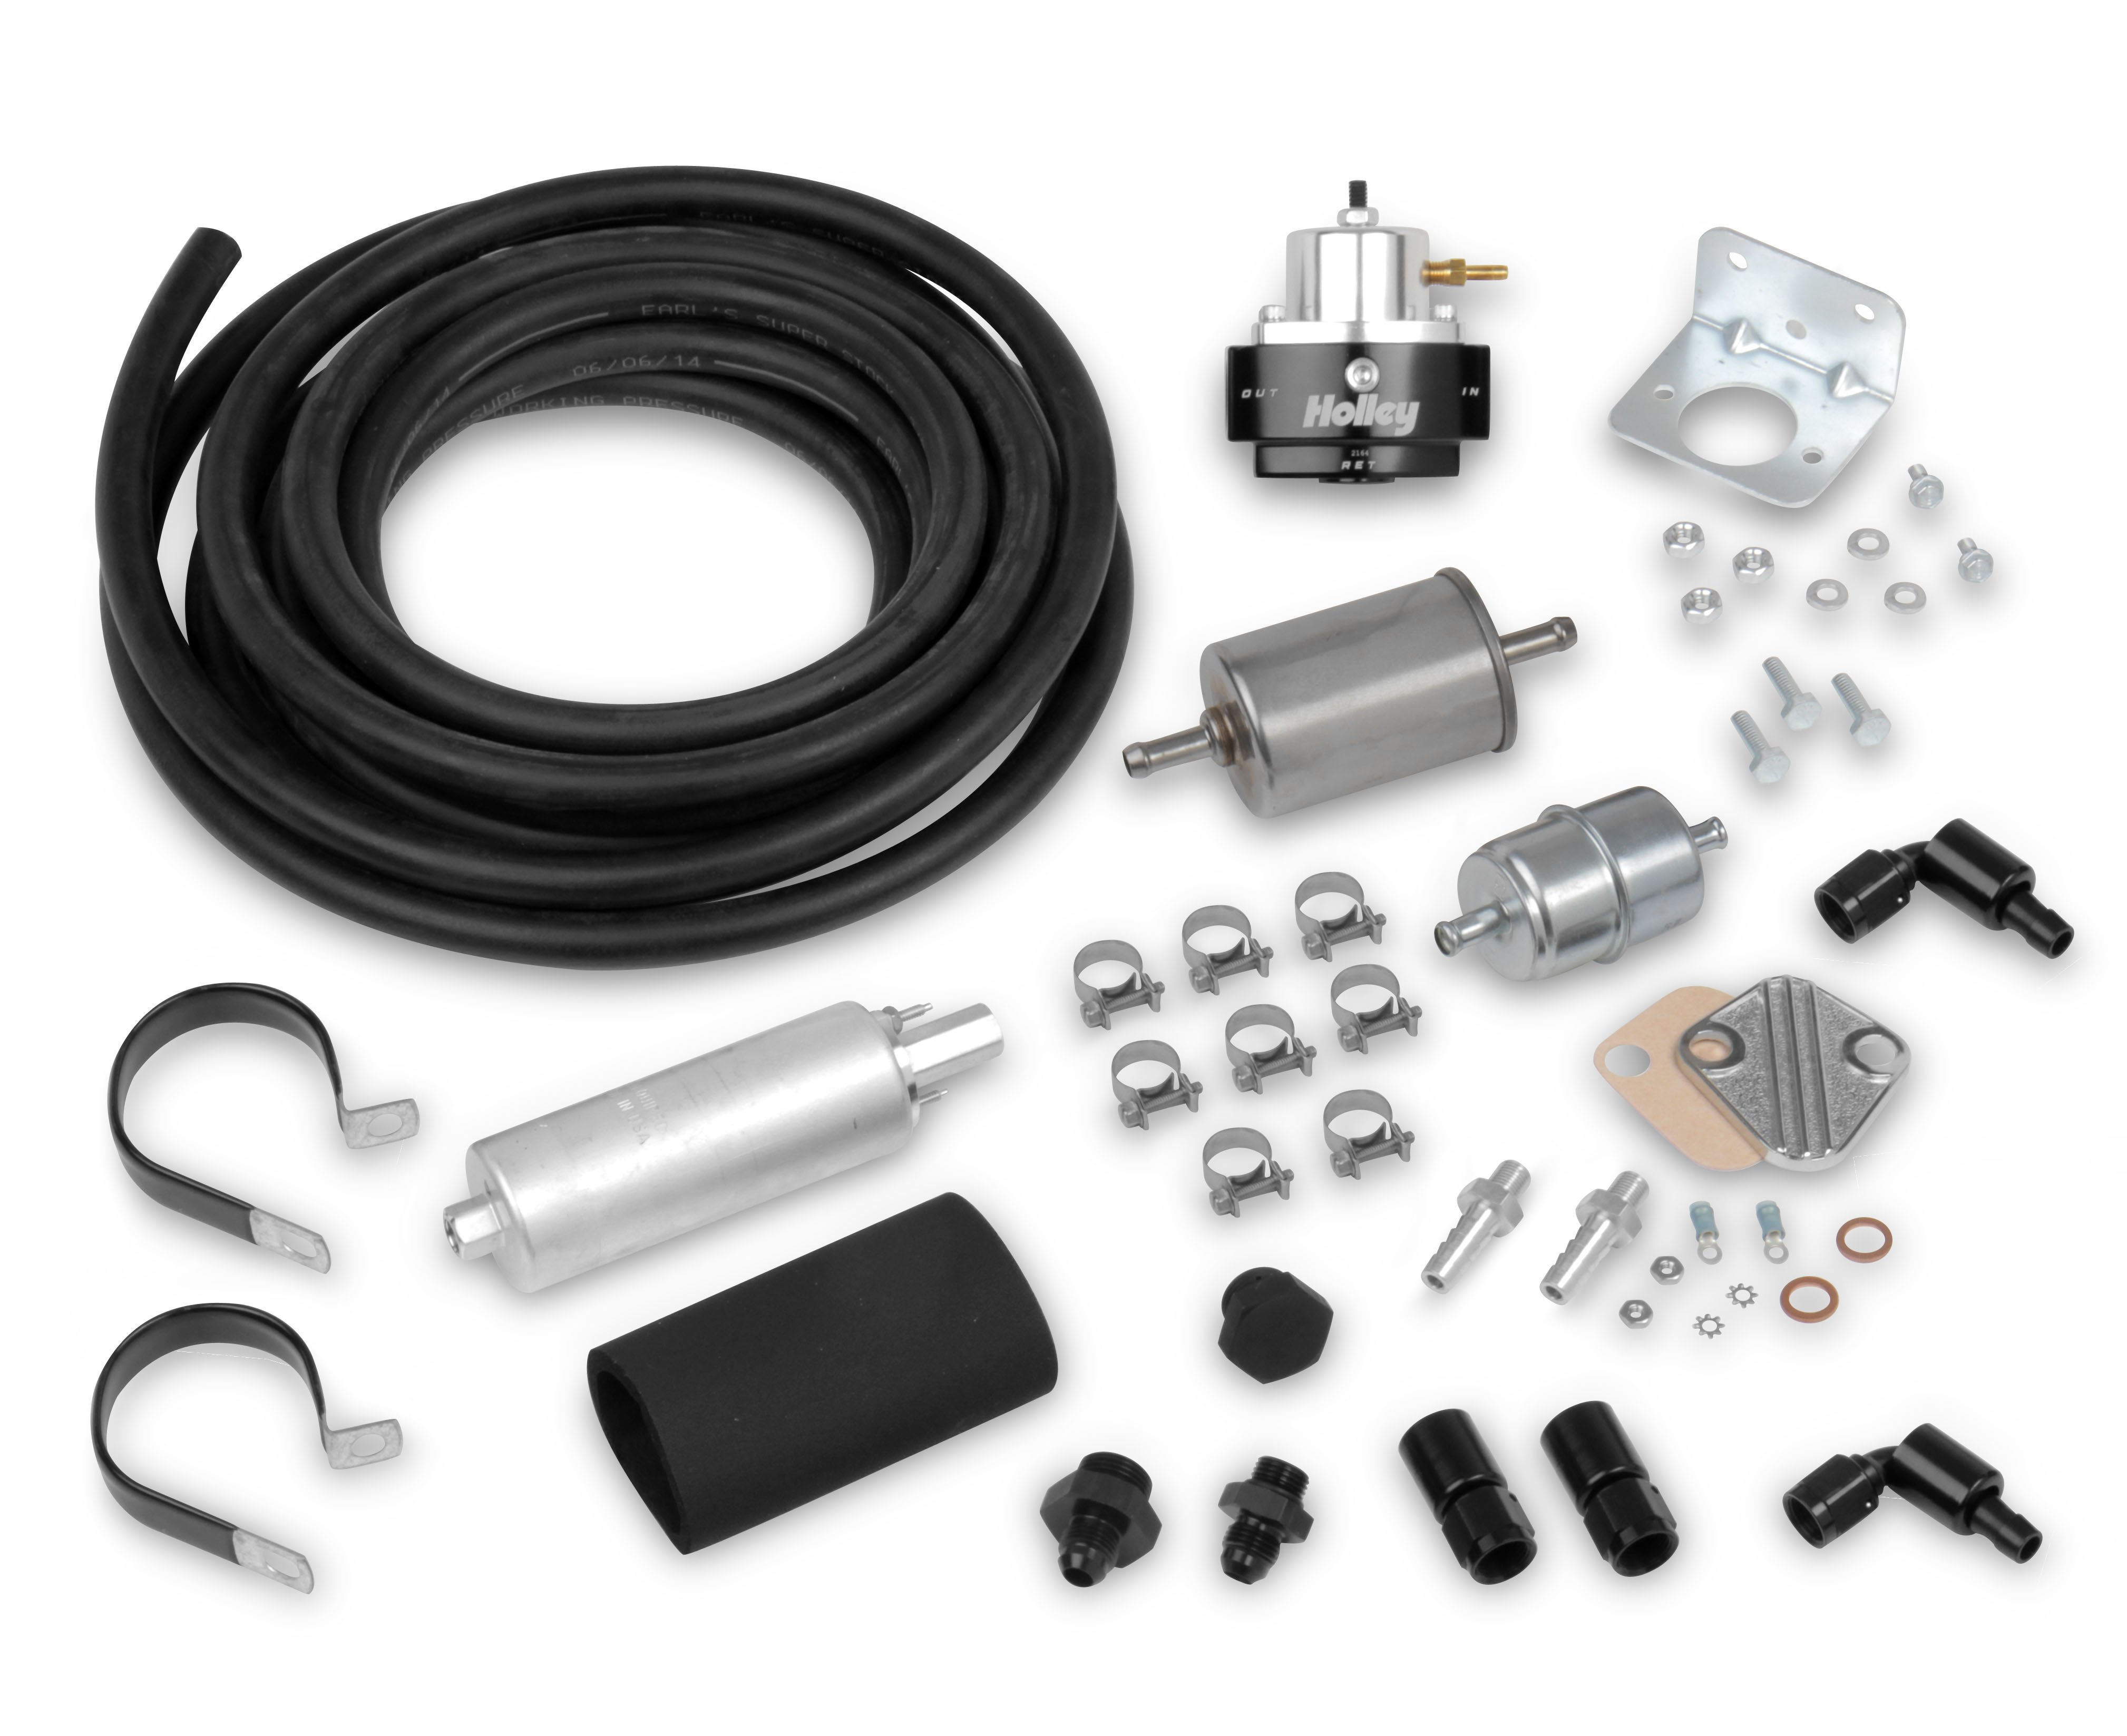 Holley EFI Fuel System Kit